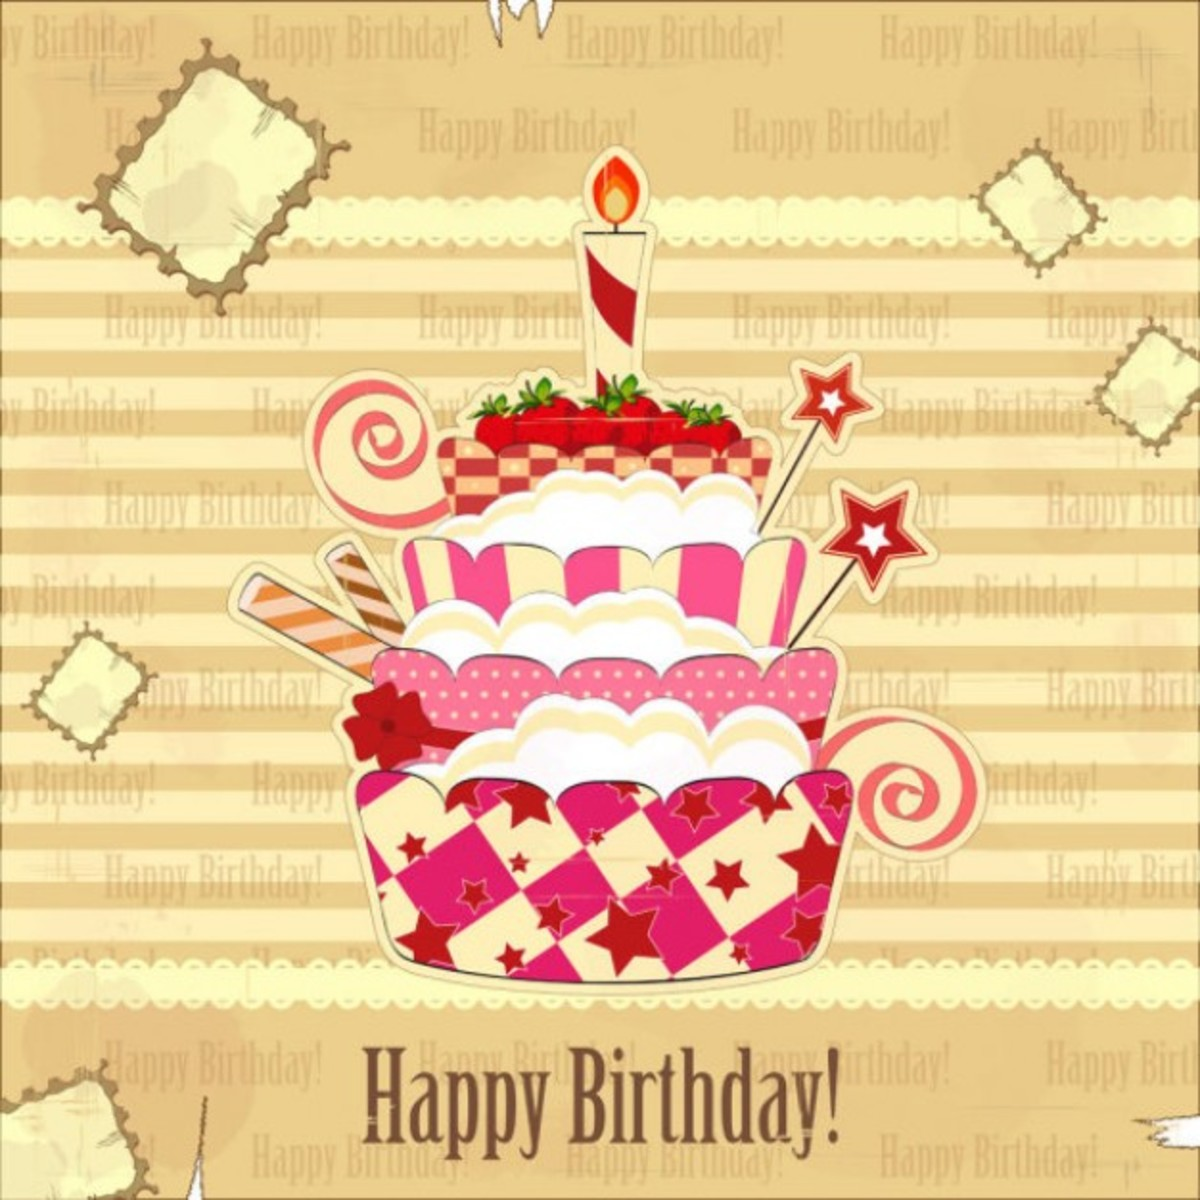 Birthday Cake with Strawberries and Candies on Grunge Background